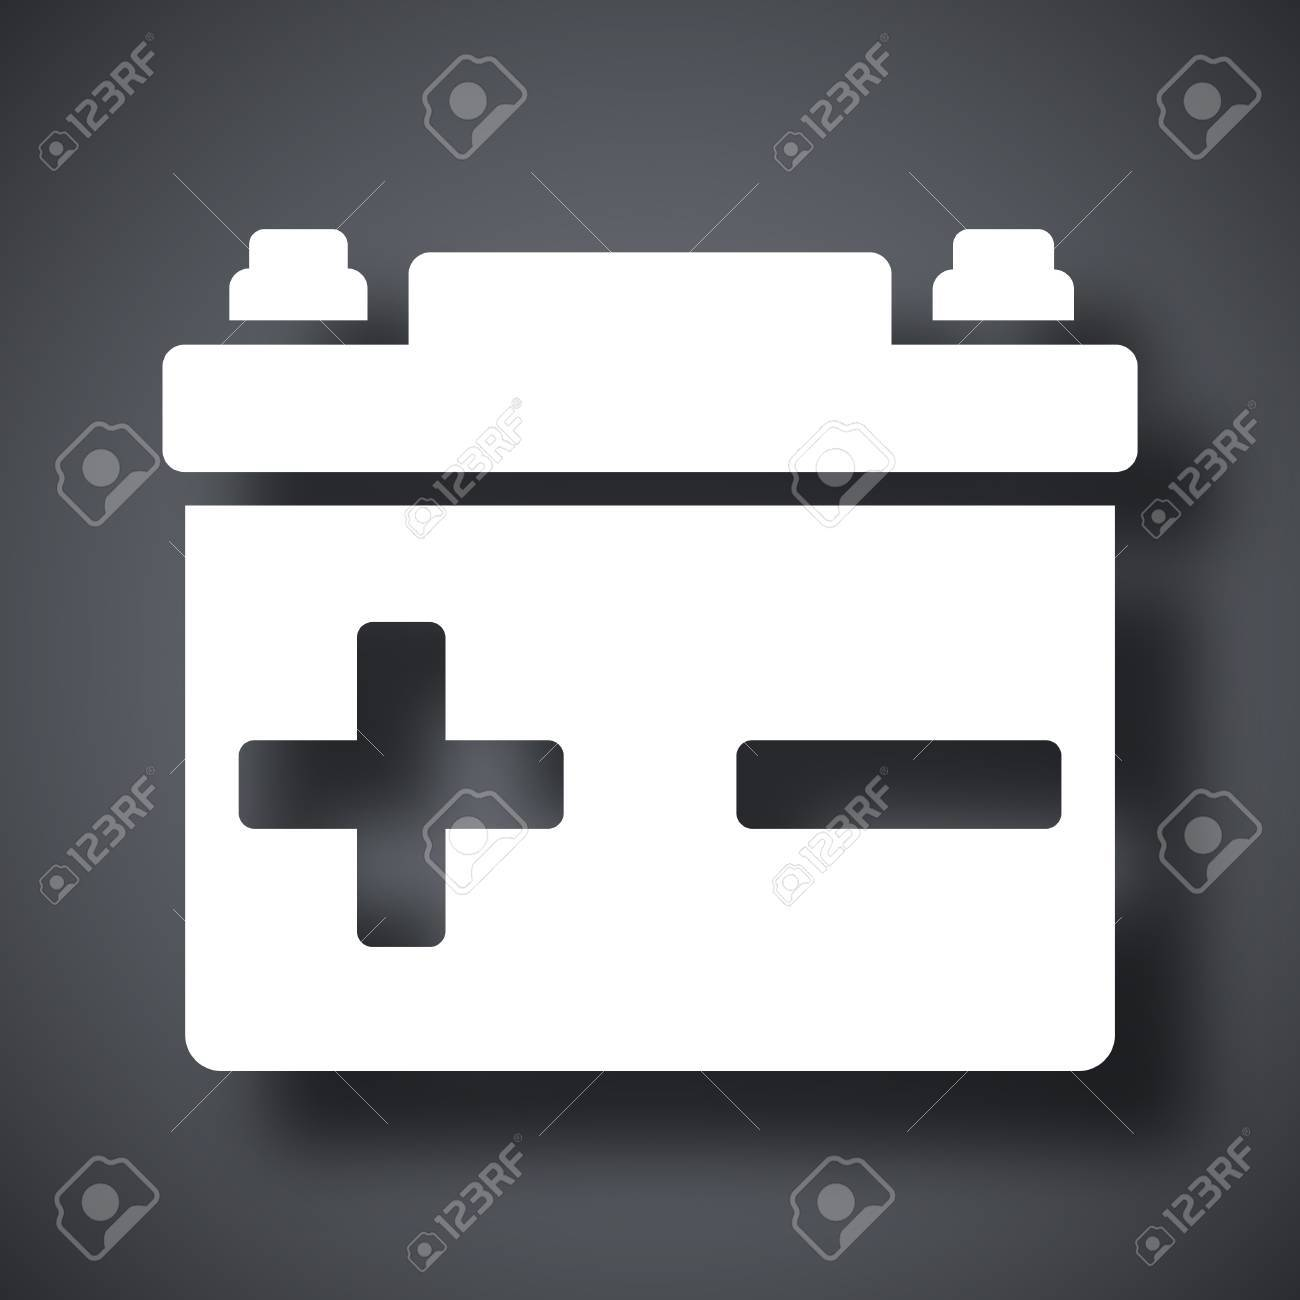 Vector Car Battery Icon Royalty Free Cliparts, Vectors, And Stock ... for Car Battery Symbol  584dqh